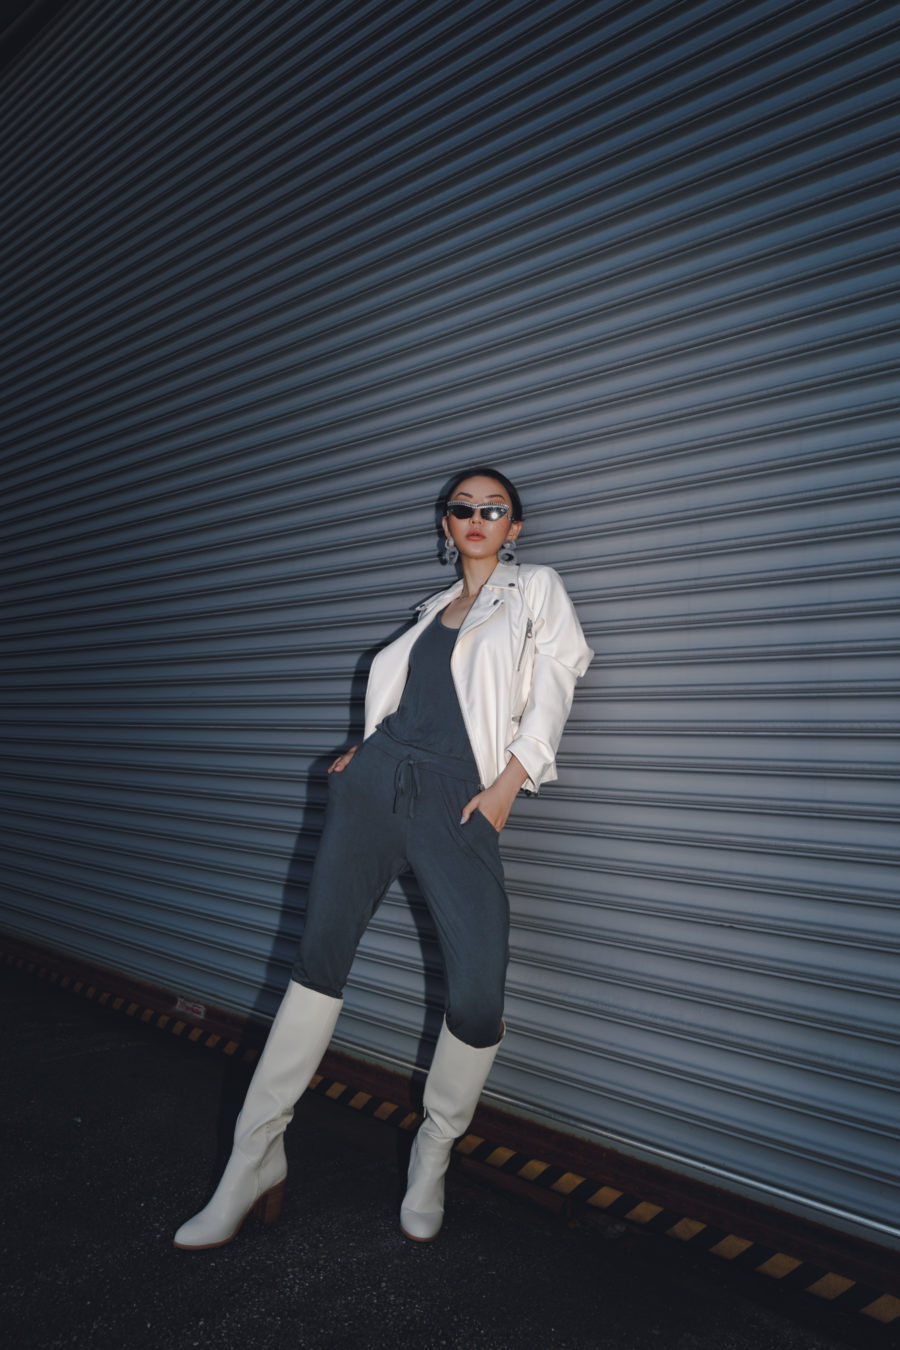 jessica wang wears knit jumpsuit and white leather jacket while sharing ways to transition your summer wardrobe to fall // Jessica Wang - Notjessfashion.com